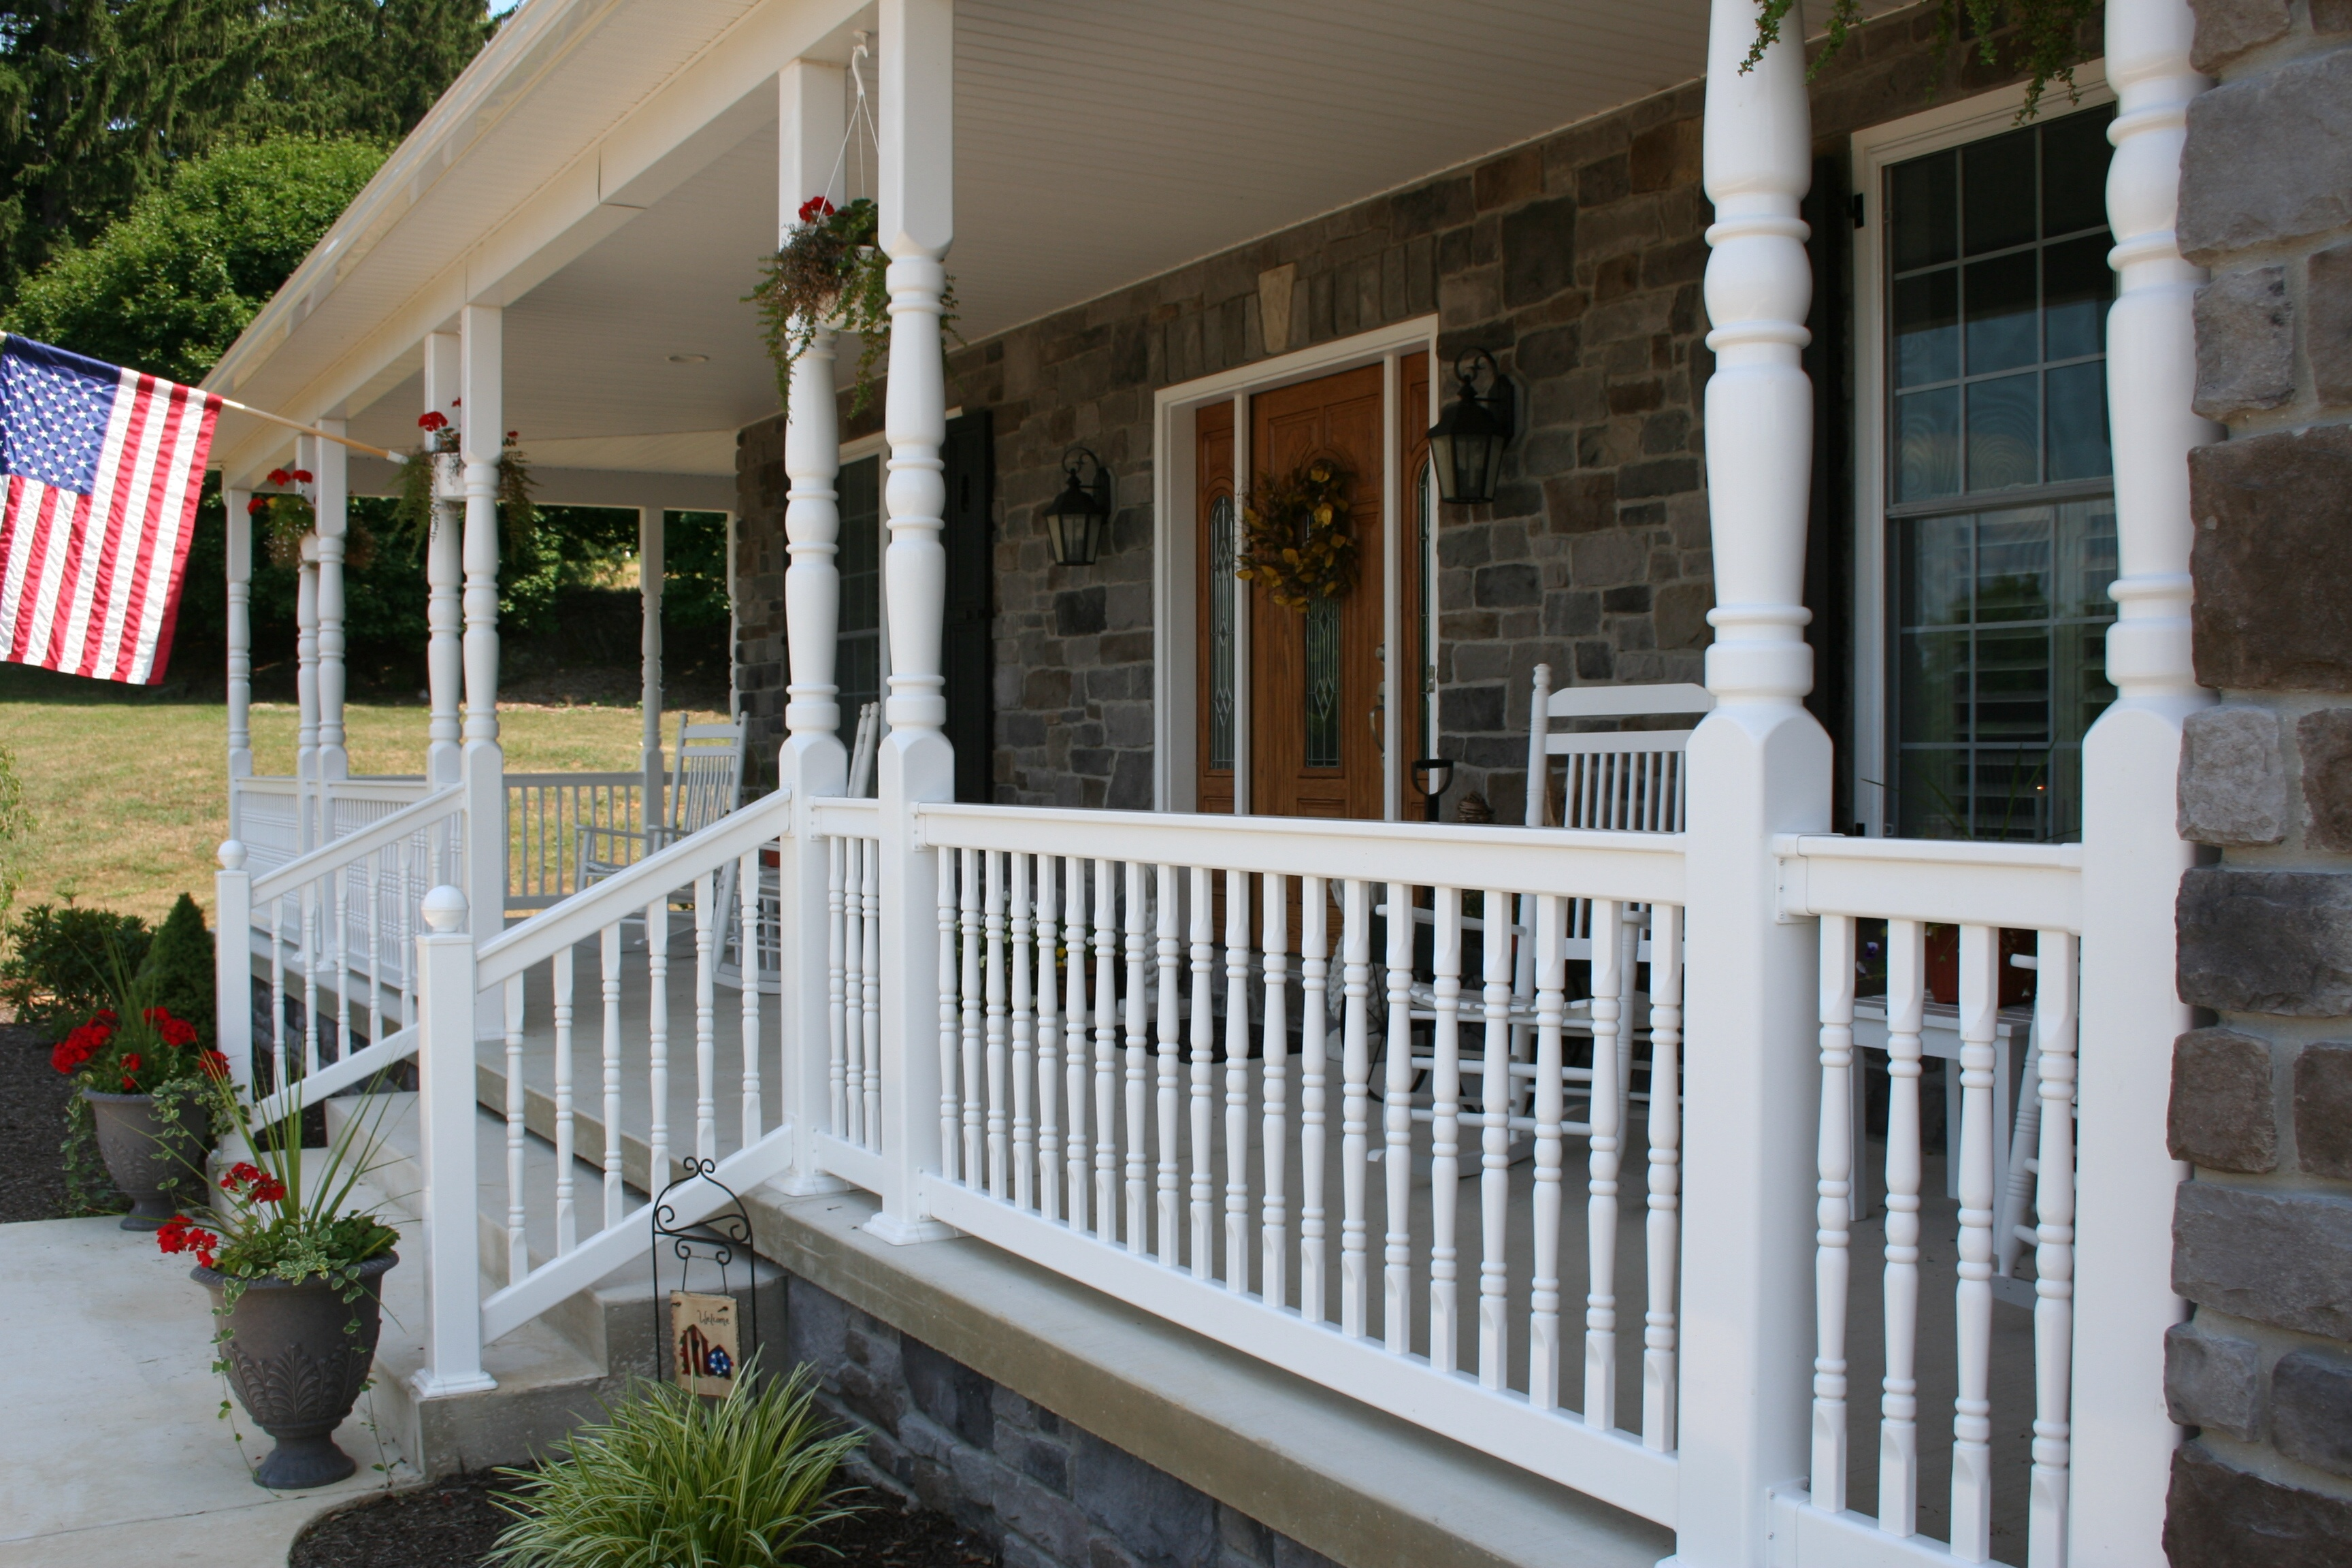 millwork fiberglass porch worthington columns capitals category product frp bases split square architectural options